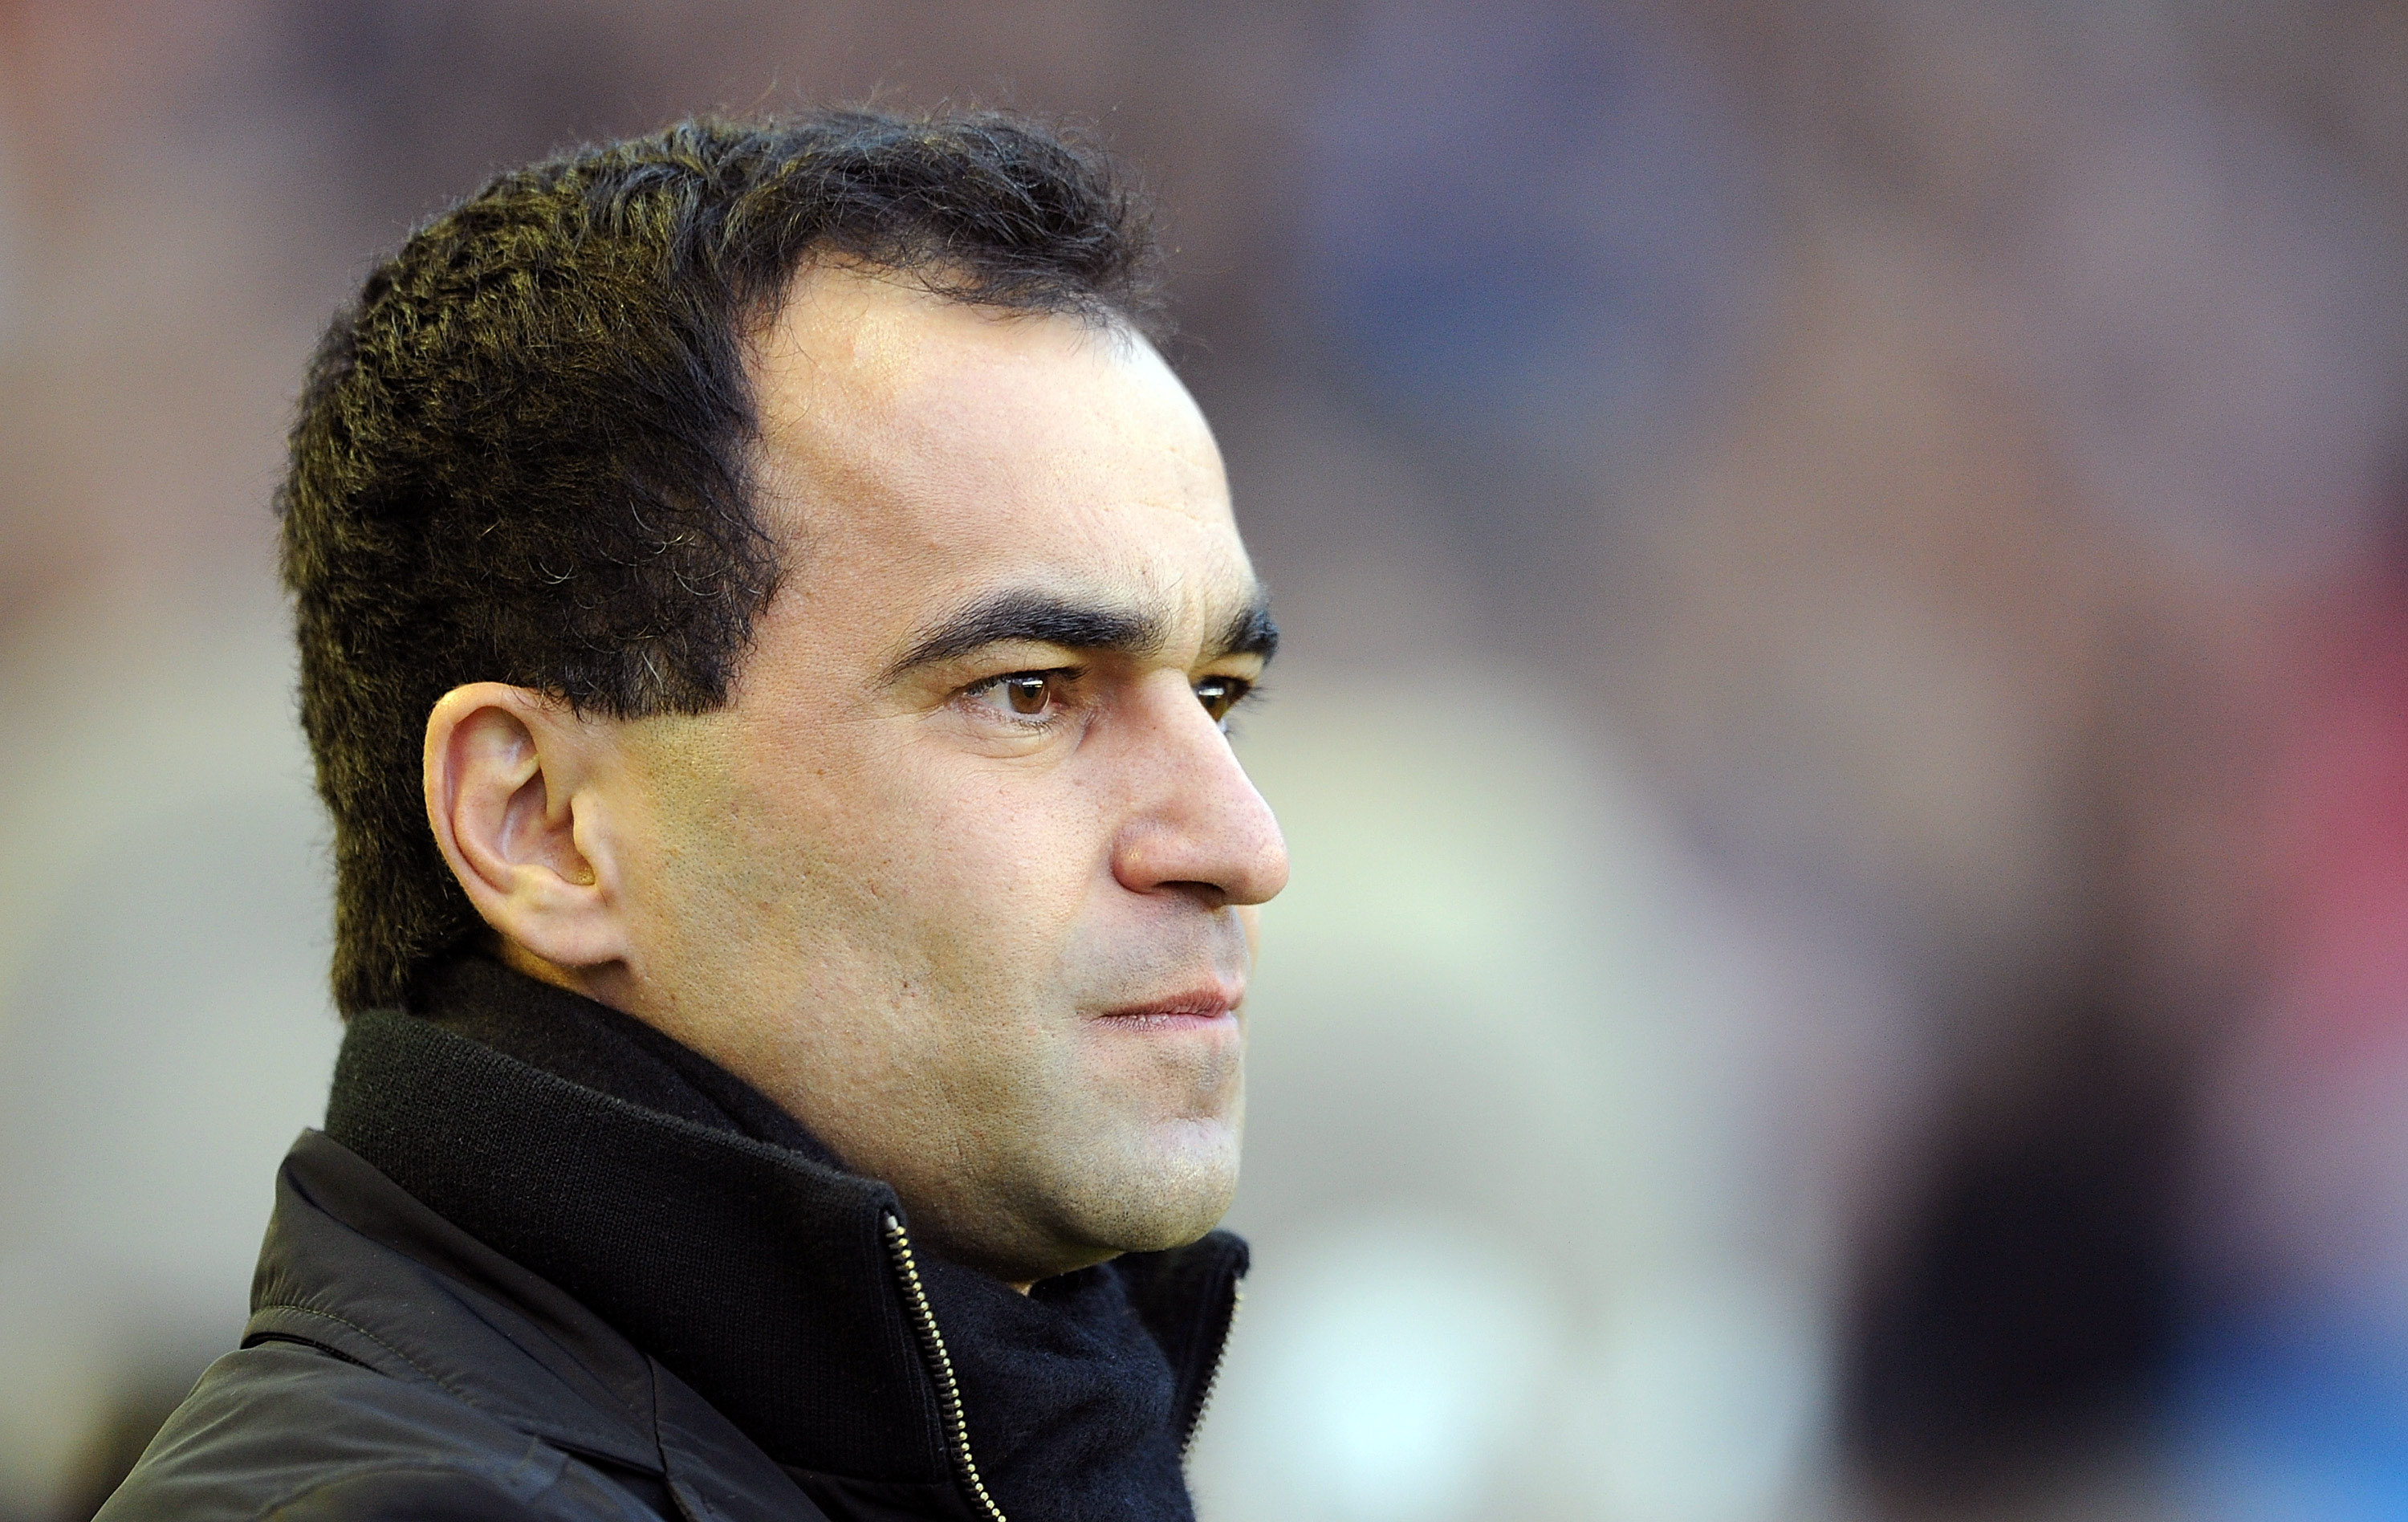 LIVERPOOL, ENGLAND - DECEMBER 11:  Wigan Athletic manager Roberto Martinez looks on during the Barclays Premier League match between Everton and Wigan Athletic at Goodison Park on December 11, 2010 in Liverpool, England.  (Photo by Chris Brunskill/Getty I